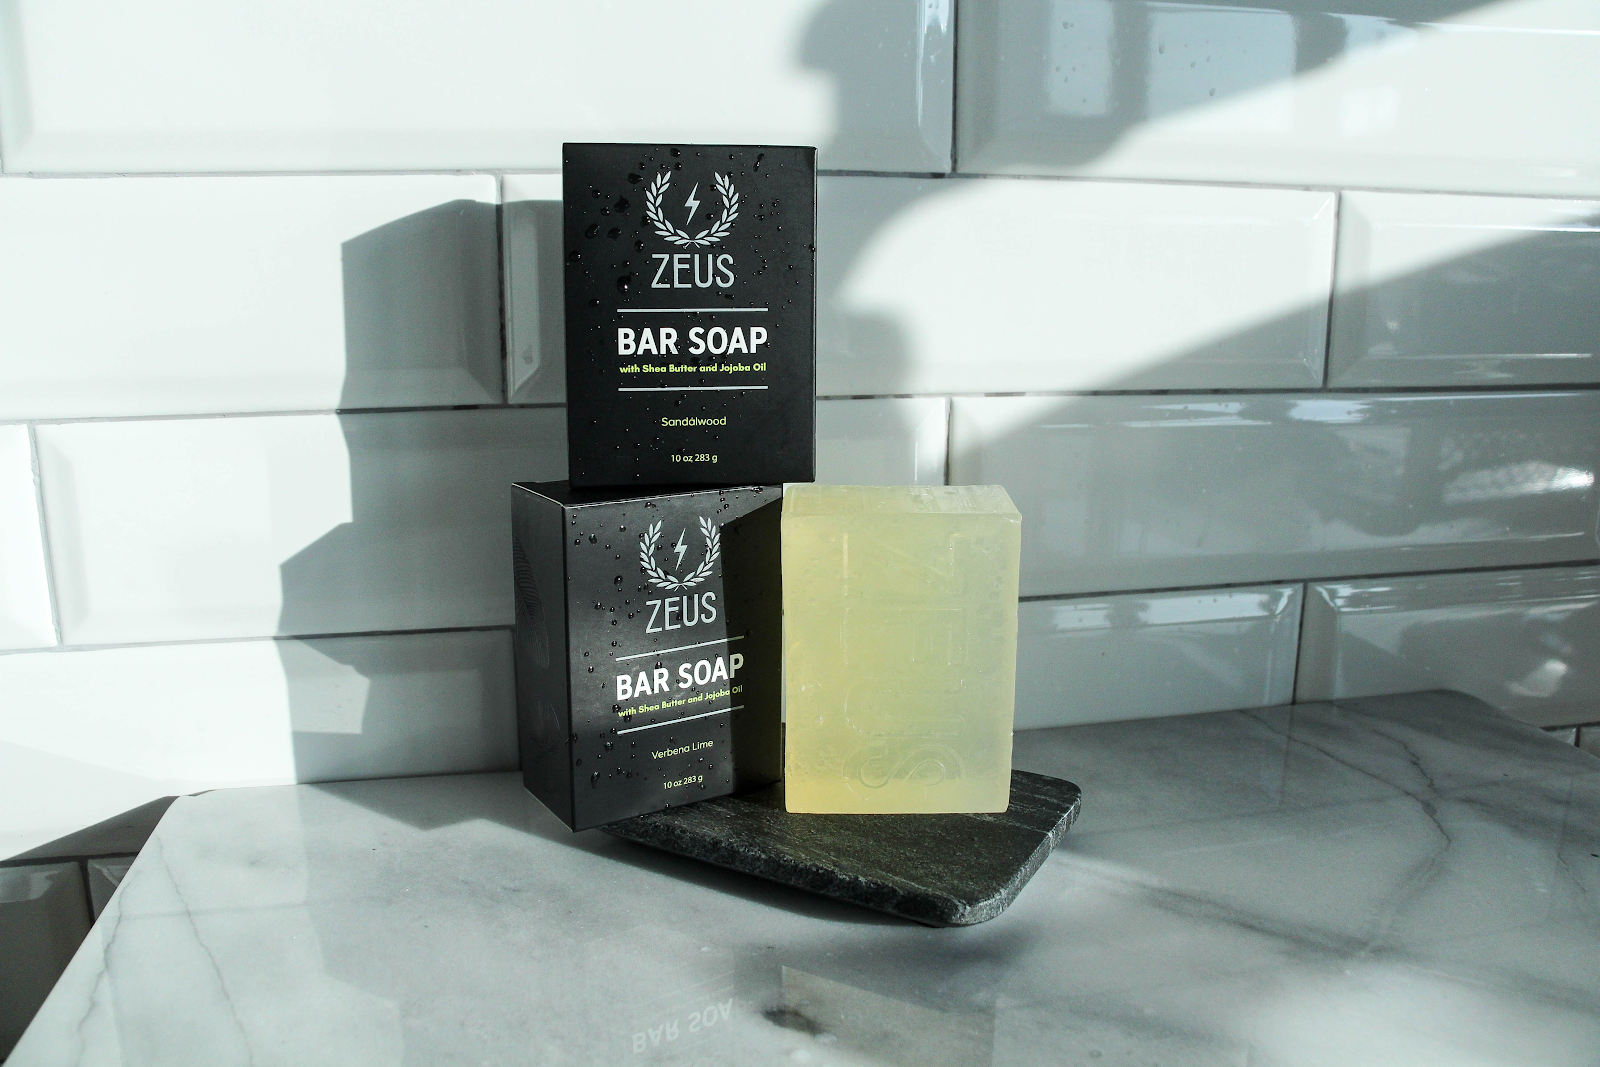 Zeus Beard bar soap